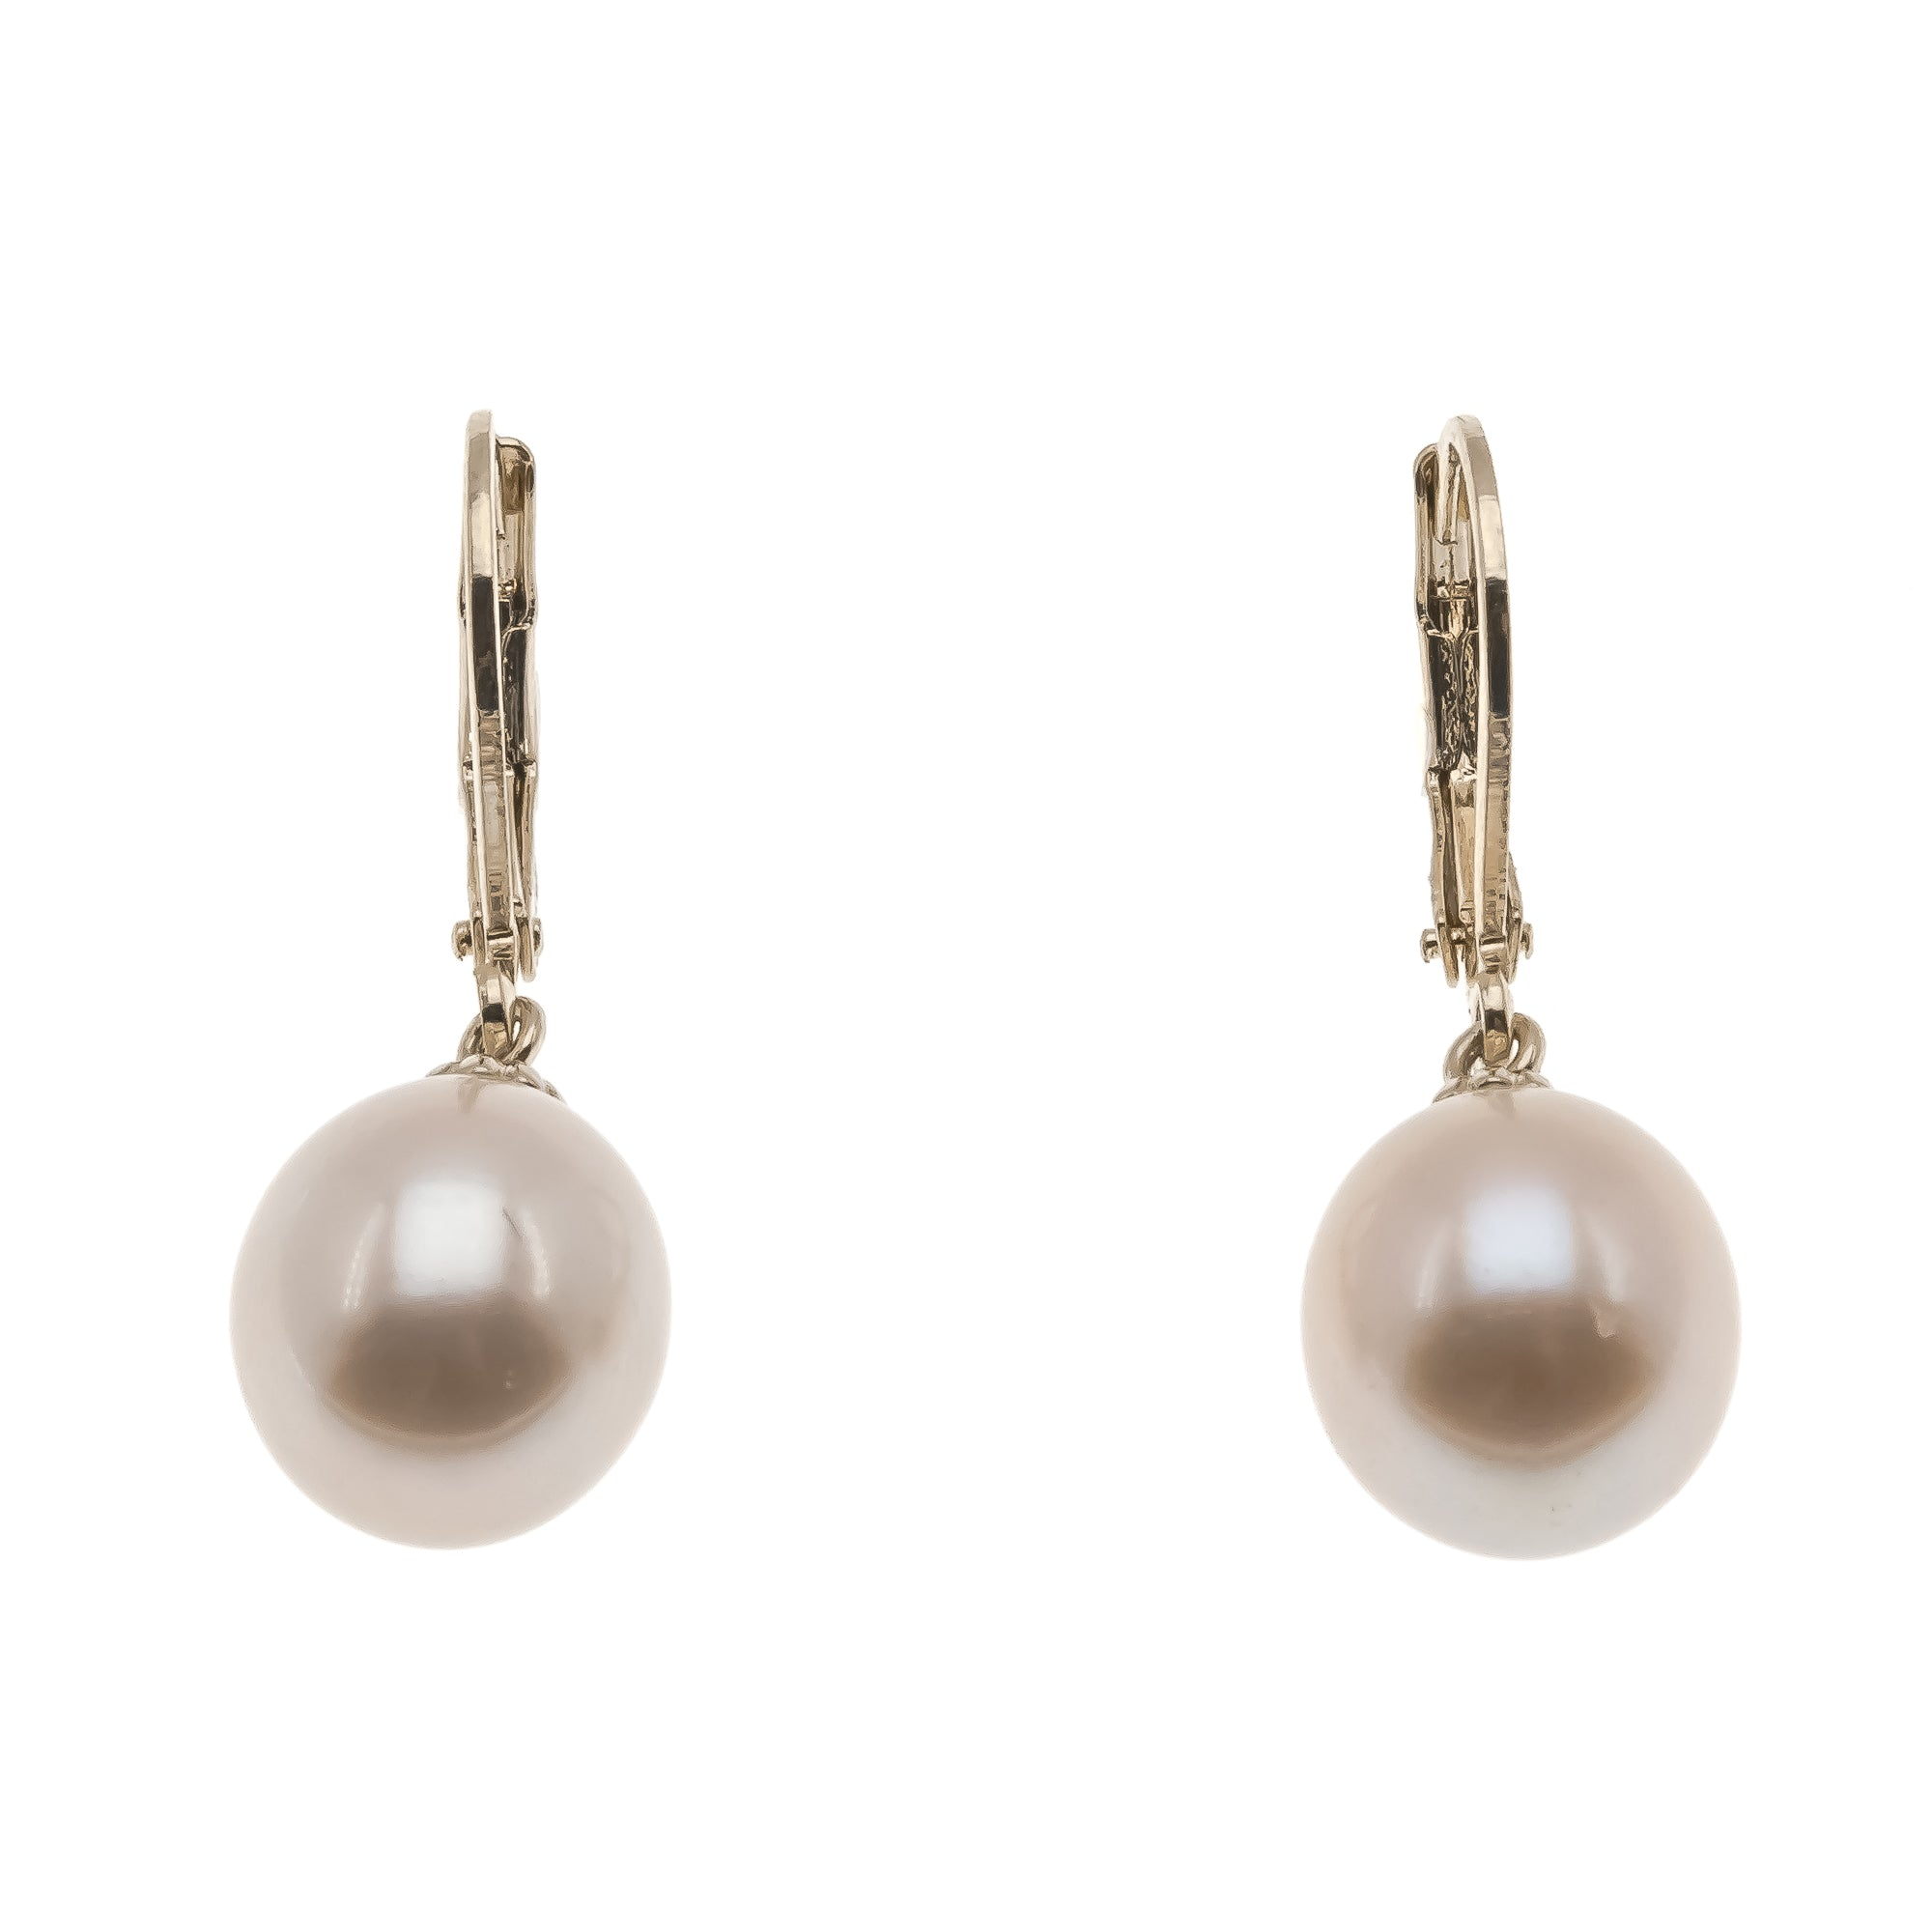 Lustrous -  Vintage 14K Gold Cultured South Sea Champagne Pearl Earrings (VE124)